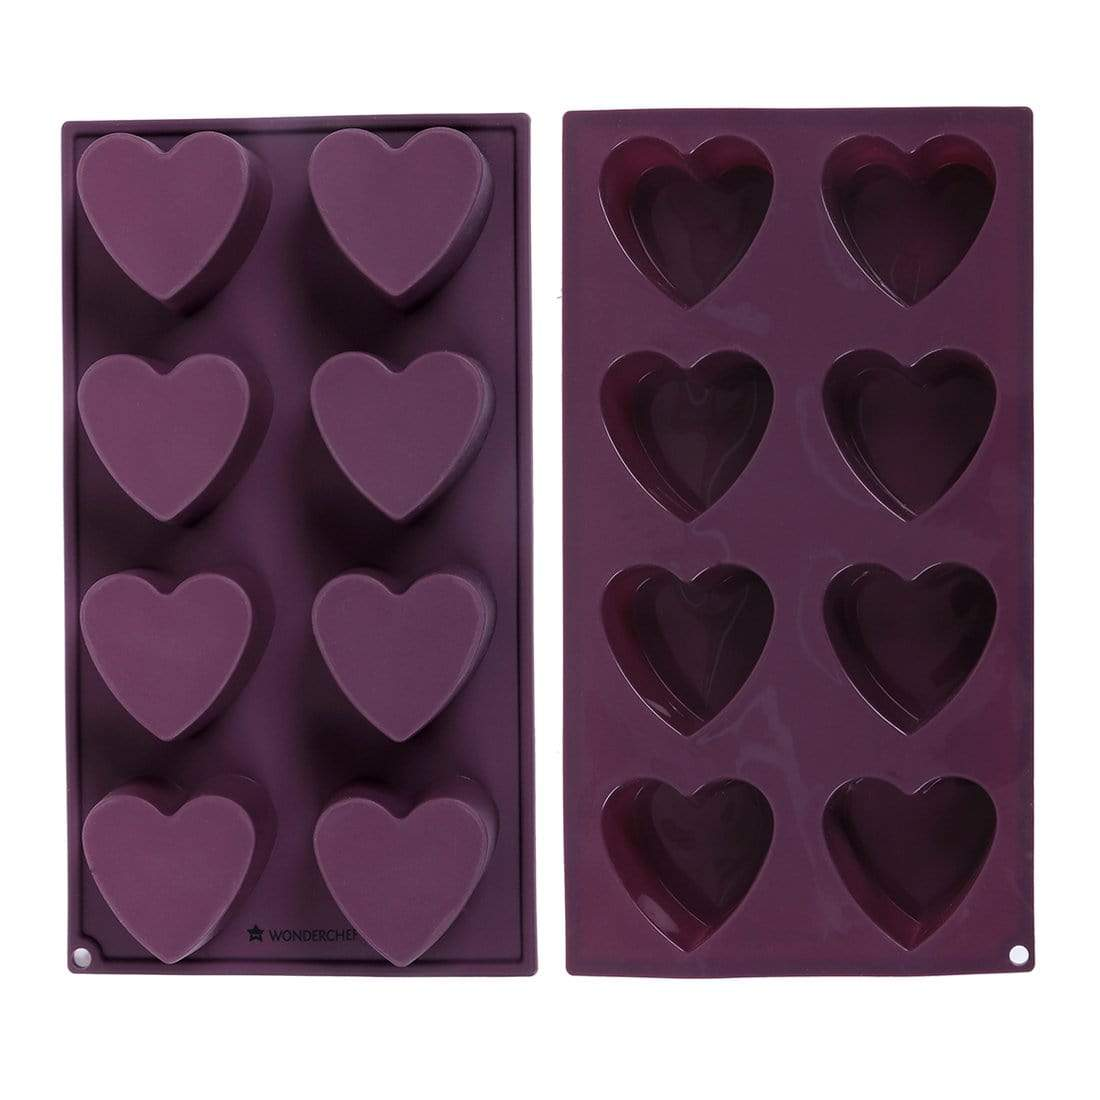 Wonderchef Silicone Heart Cake Mould